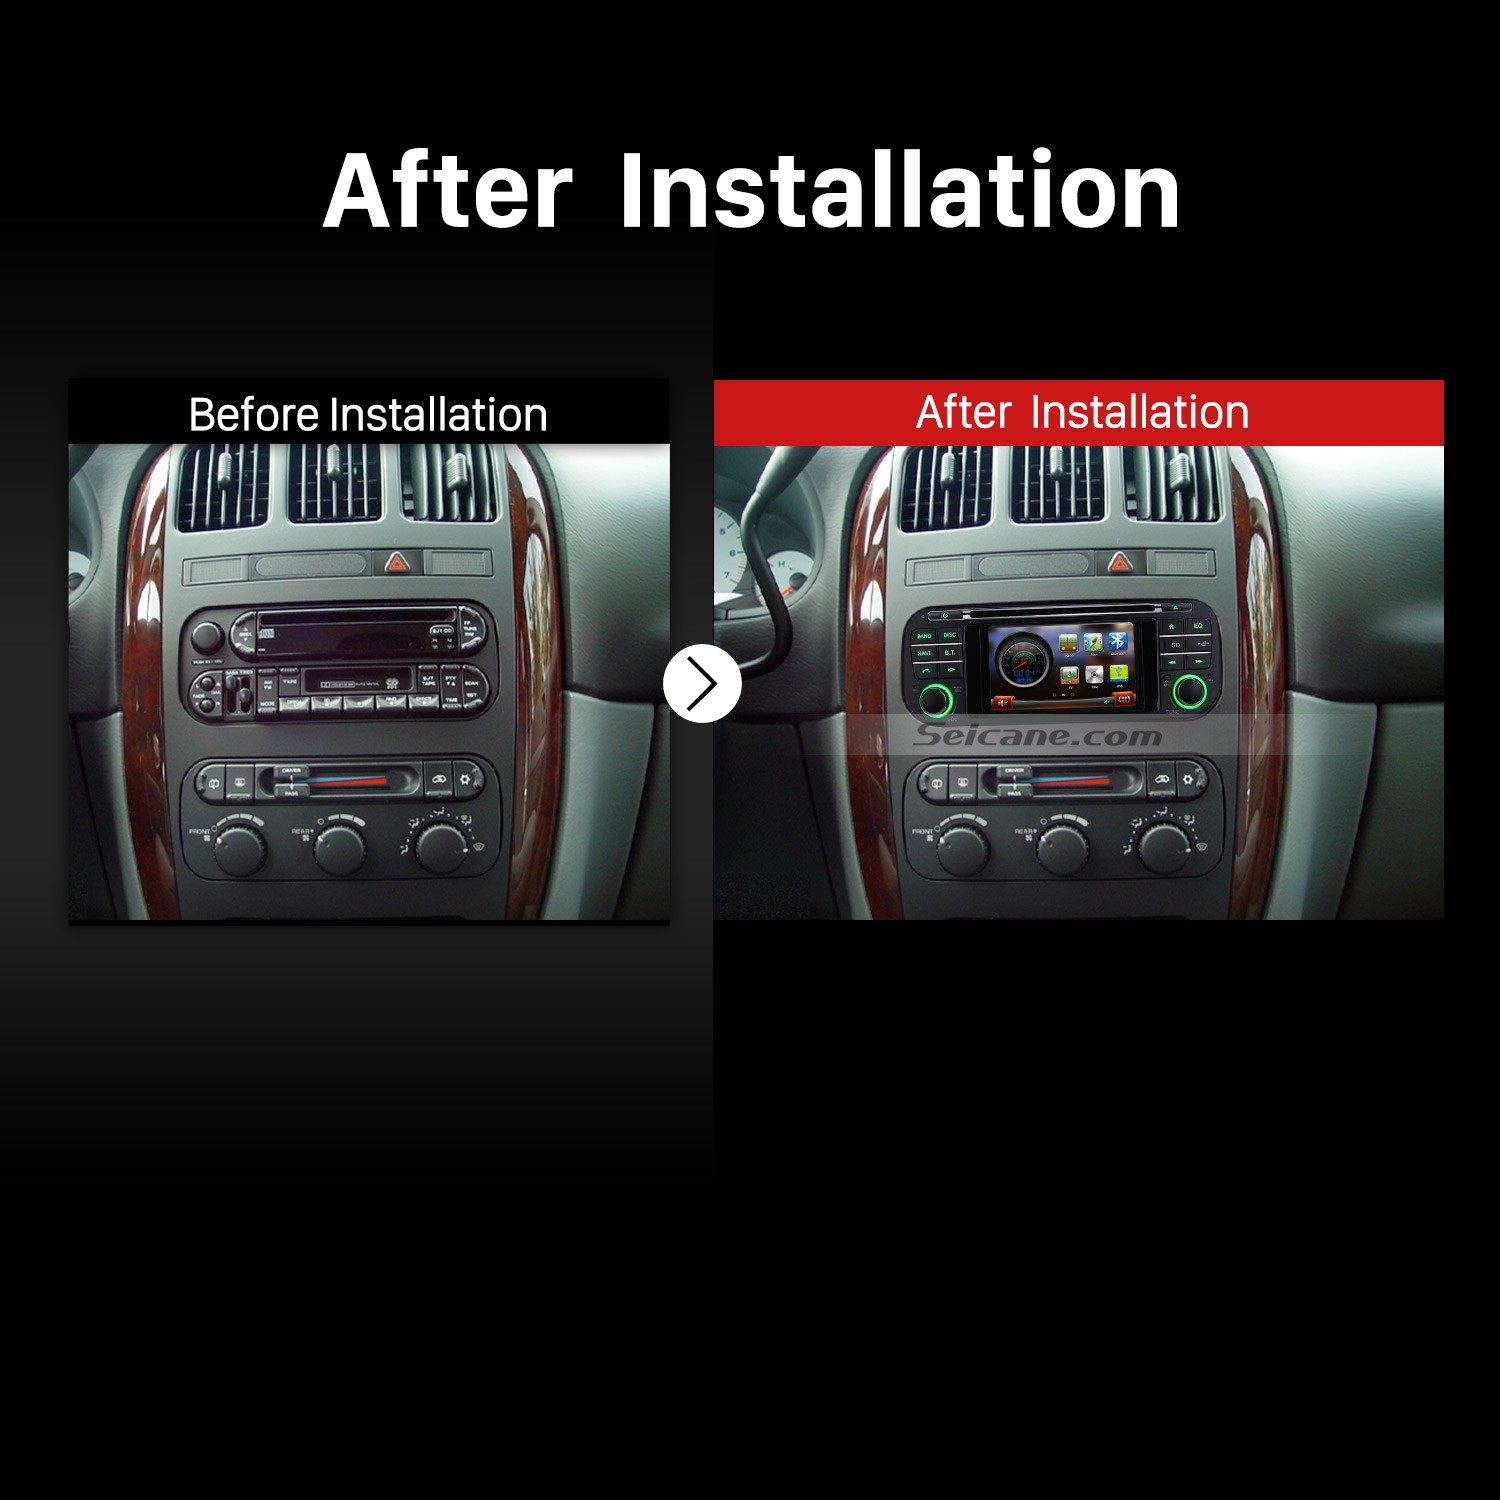 how to upgrade a 1999 2004 jeep grand cherokee gps bluetooth radio 1999 Jeep Grand Cherokee 1999 2004 jeep grand cherokee gps bluetooth radio stereo after installation